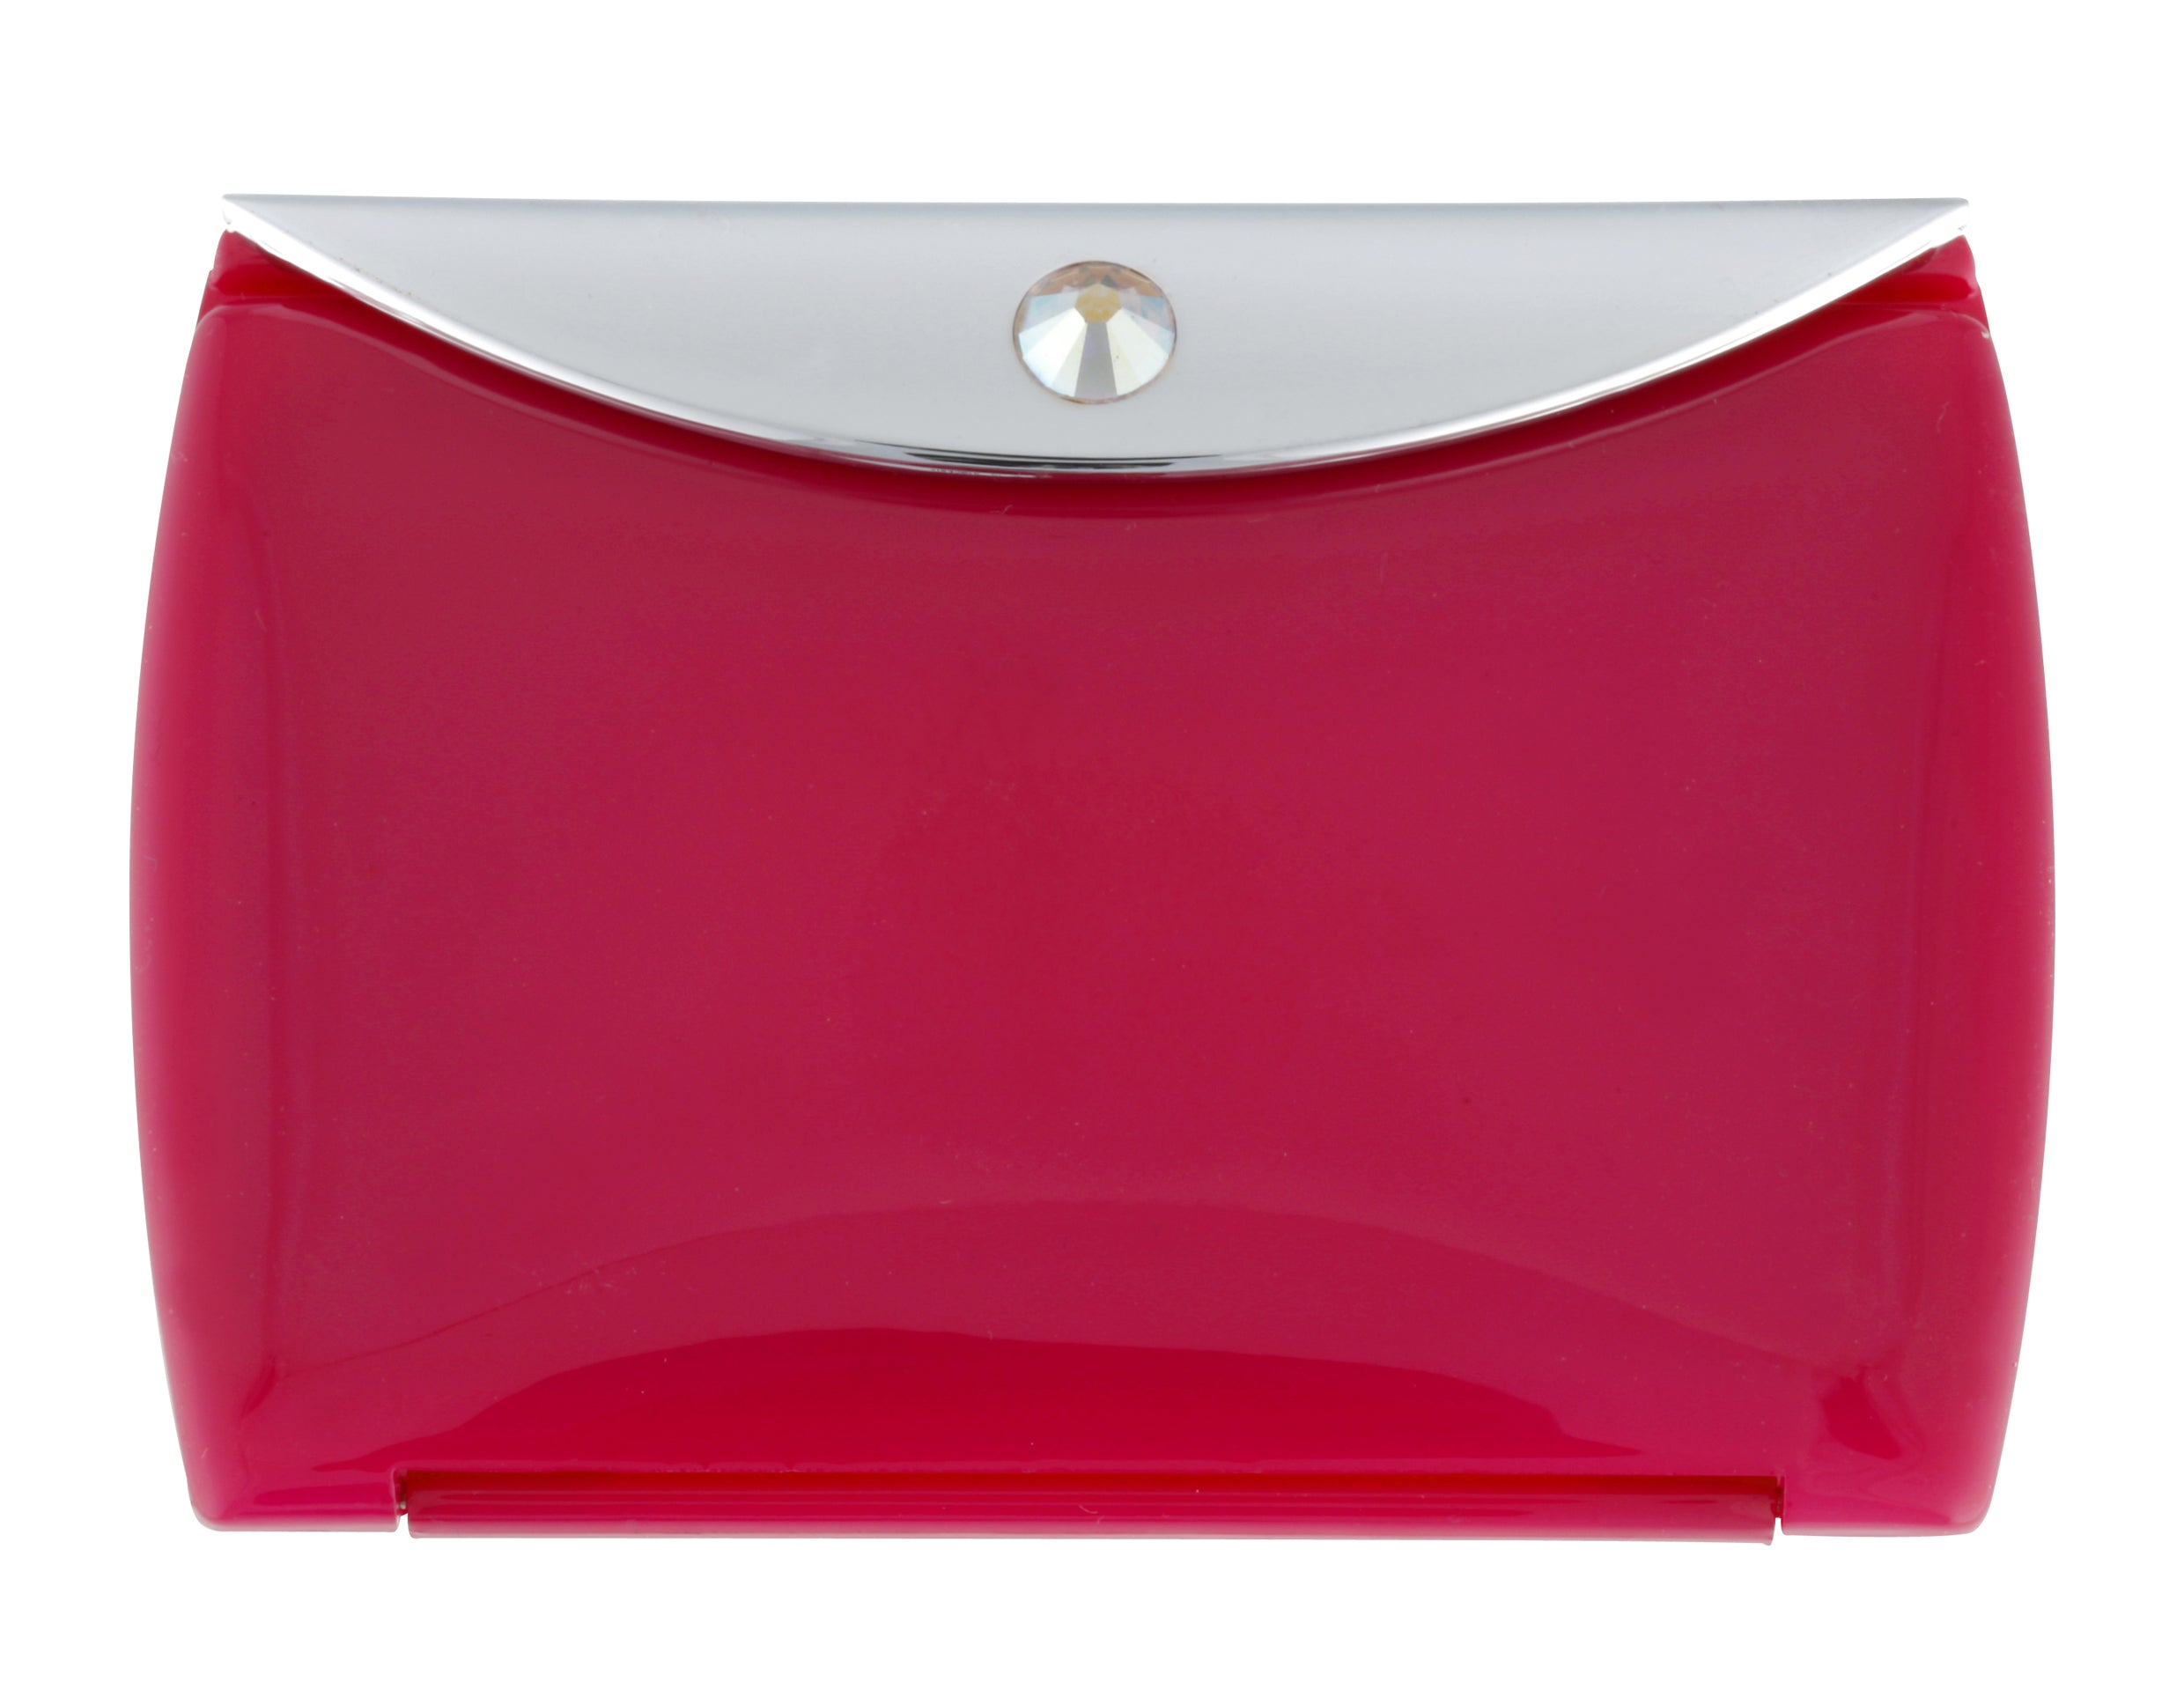 Fancy Metal Goods Pink Mirror Compact Envelope 3x Mag with Swarovski Crystal